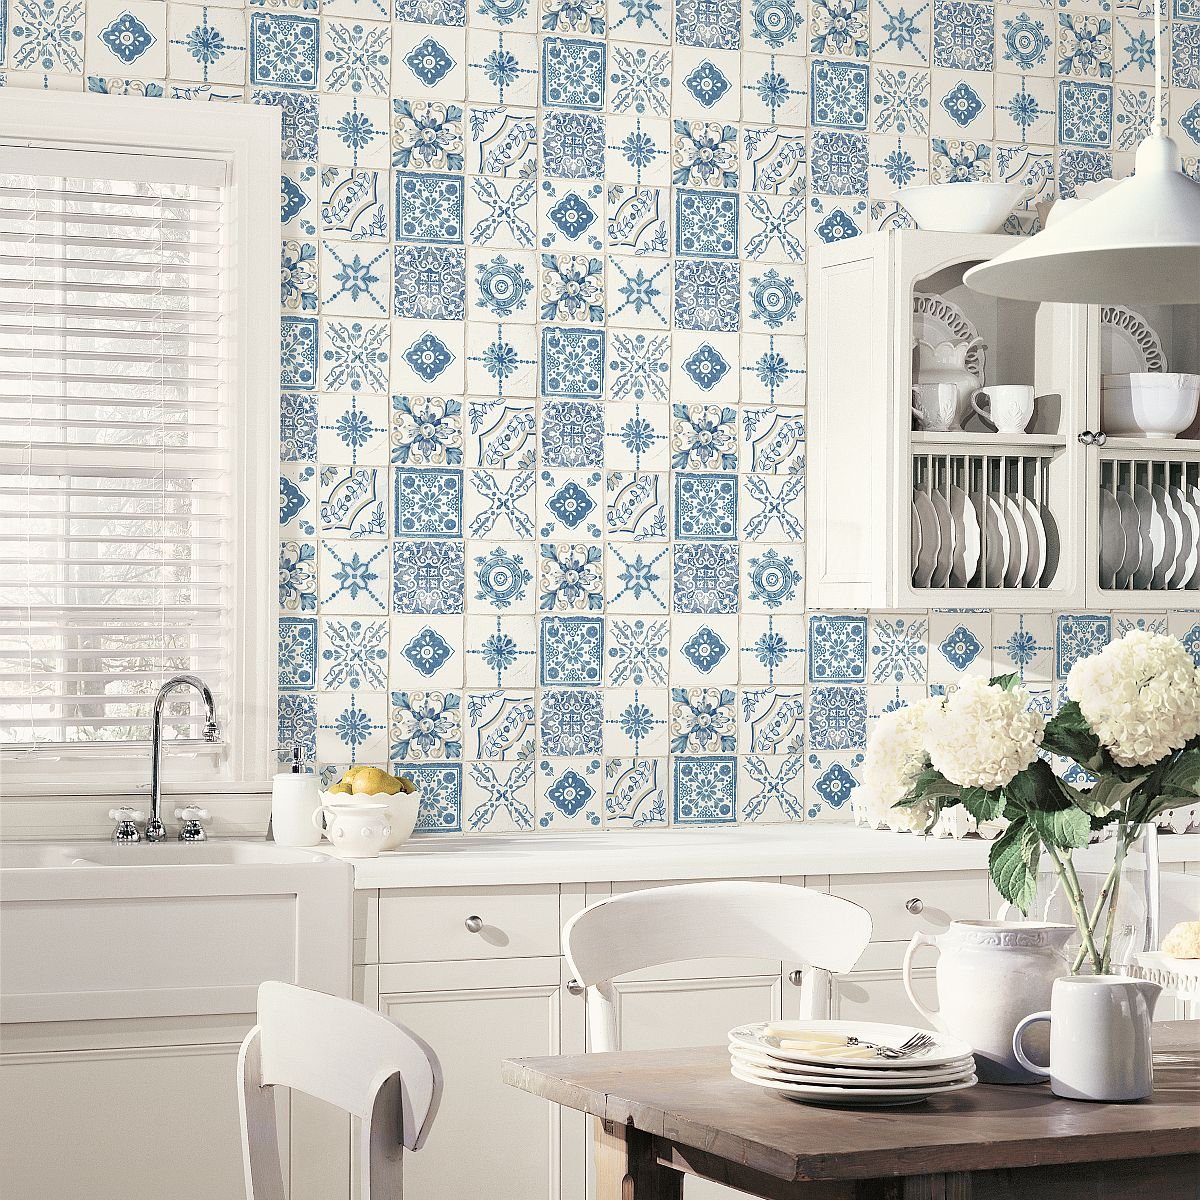 Trendy Kitchen Wallpaper Dubai